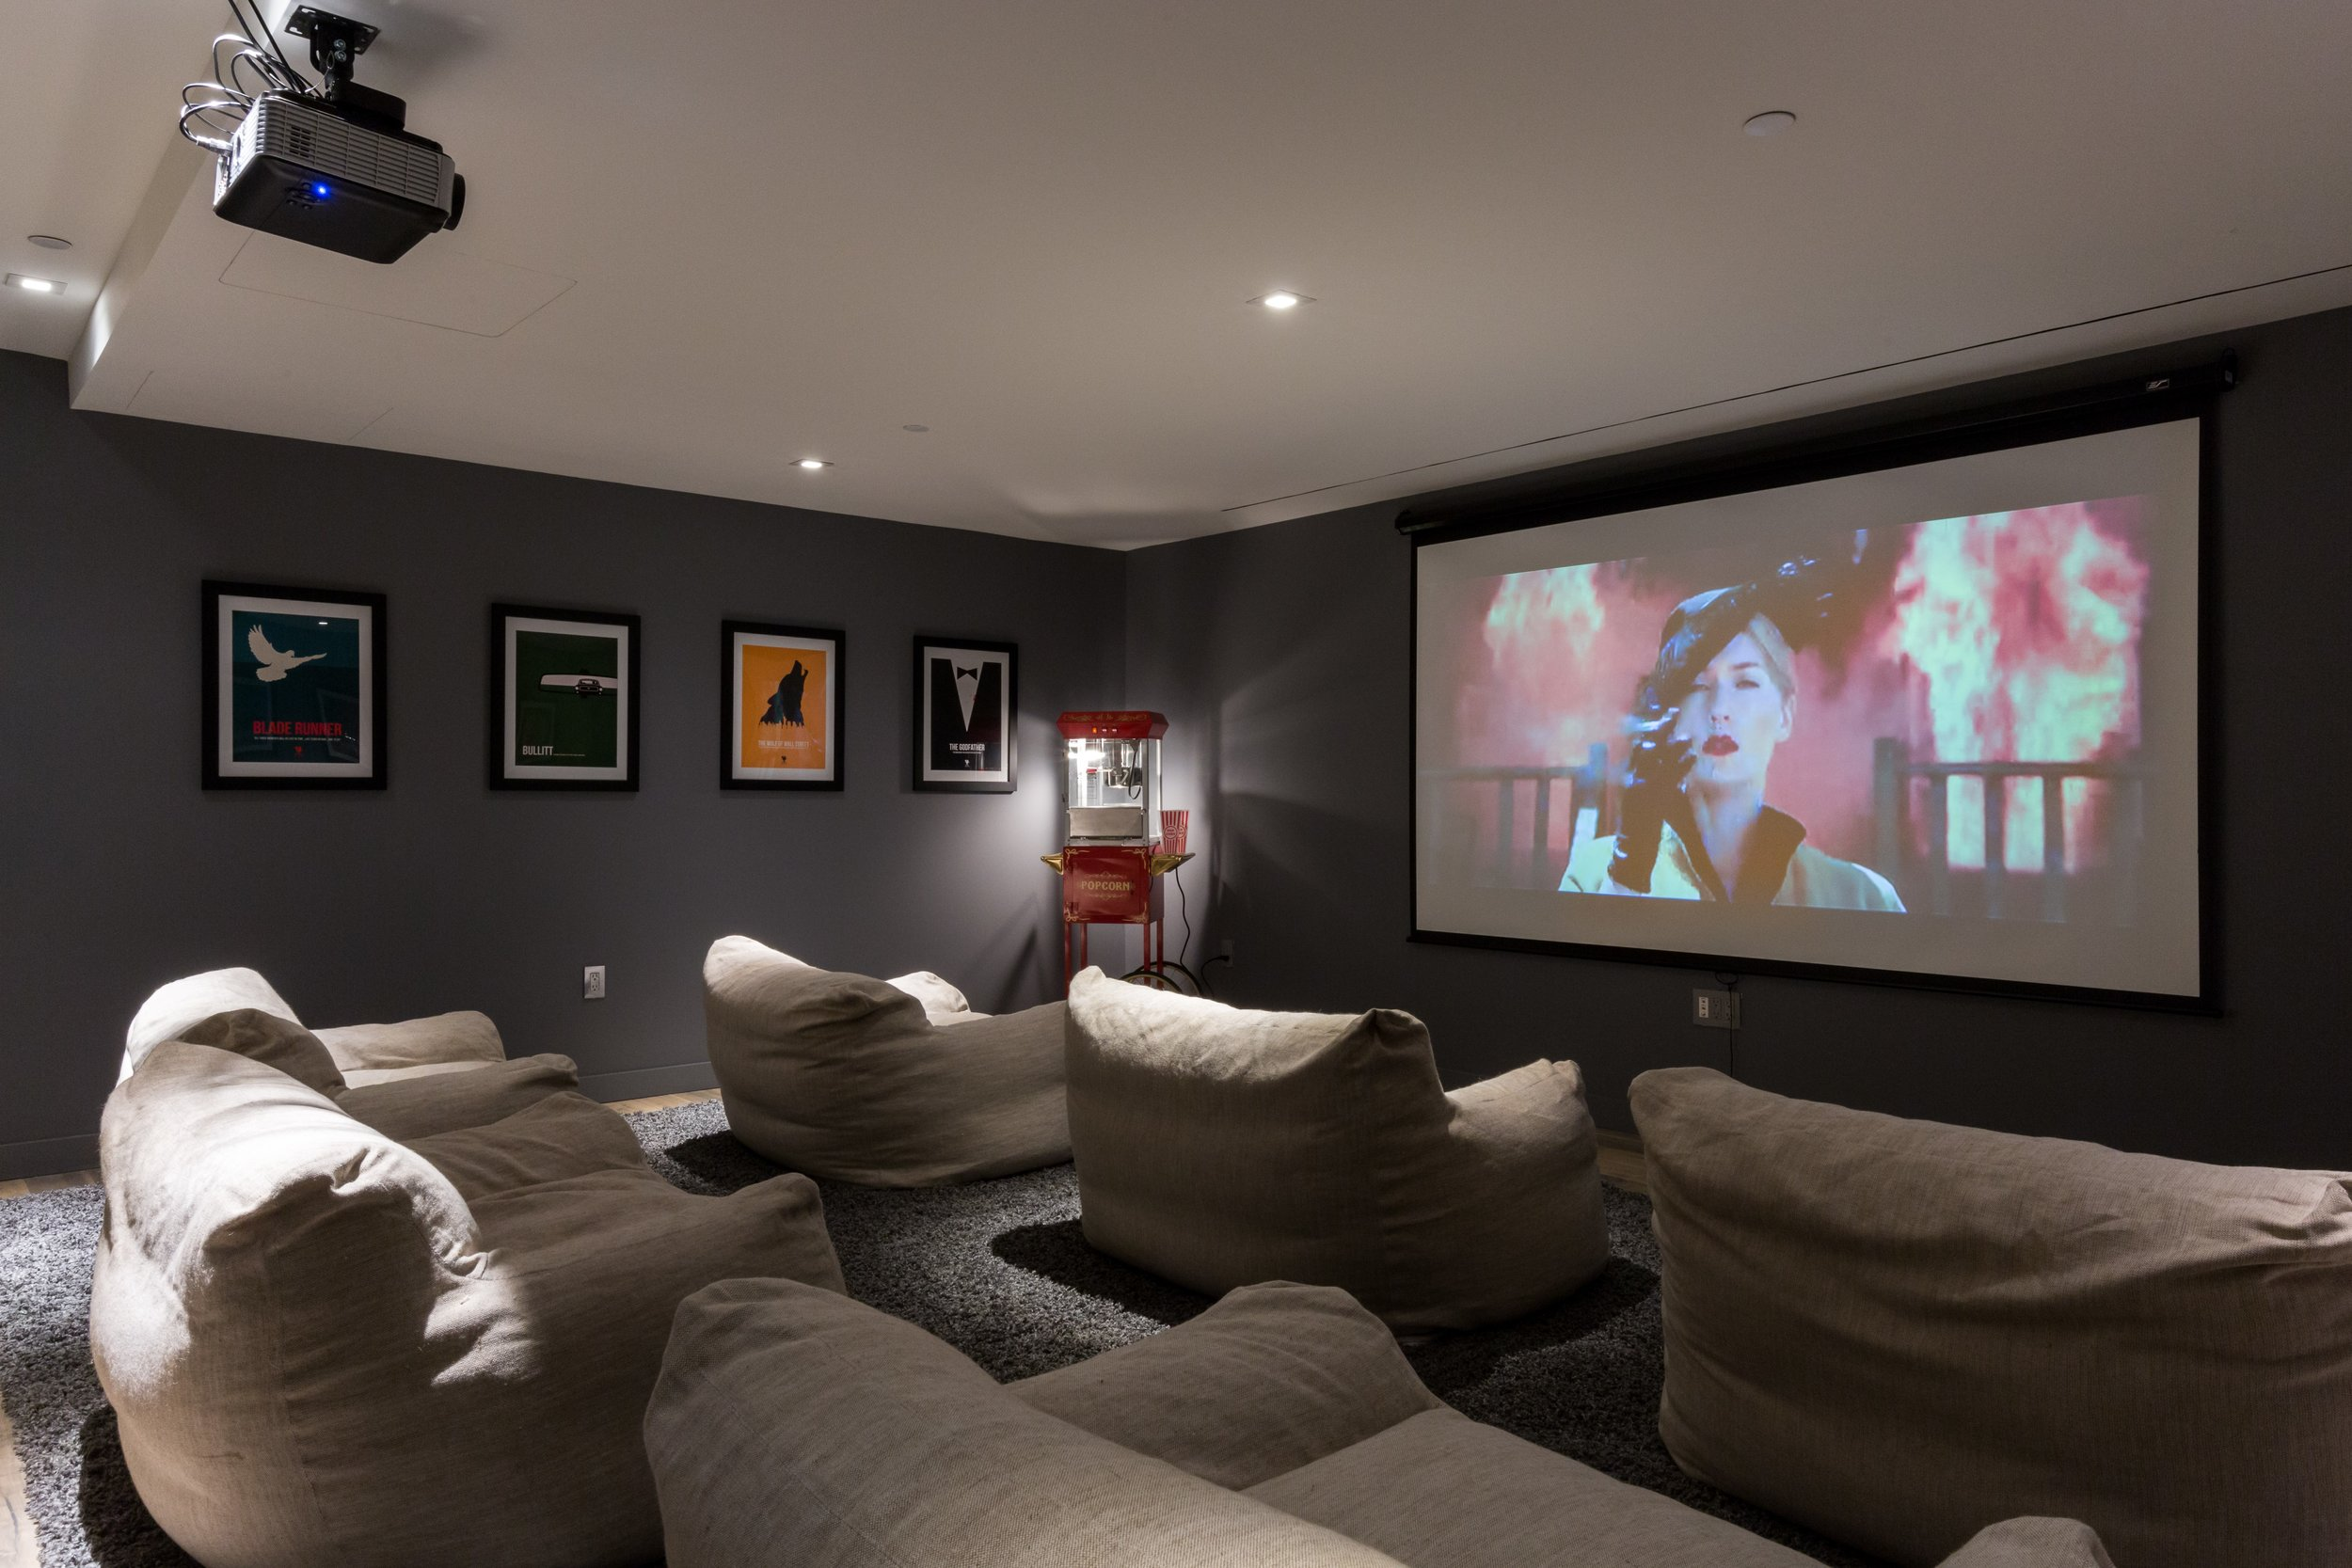 Instead of artwork or photography, we framed vintage movie posters in this basement renovation for an authentic theater impression.